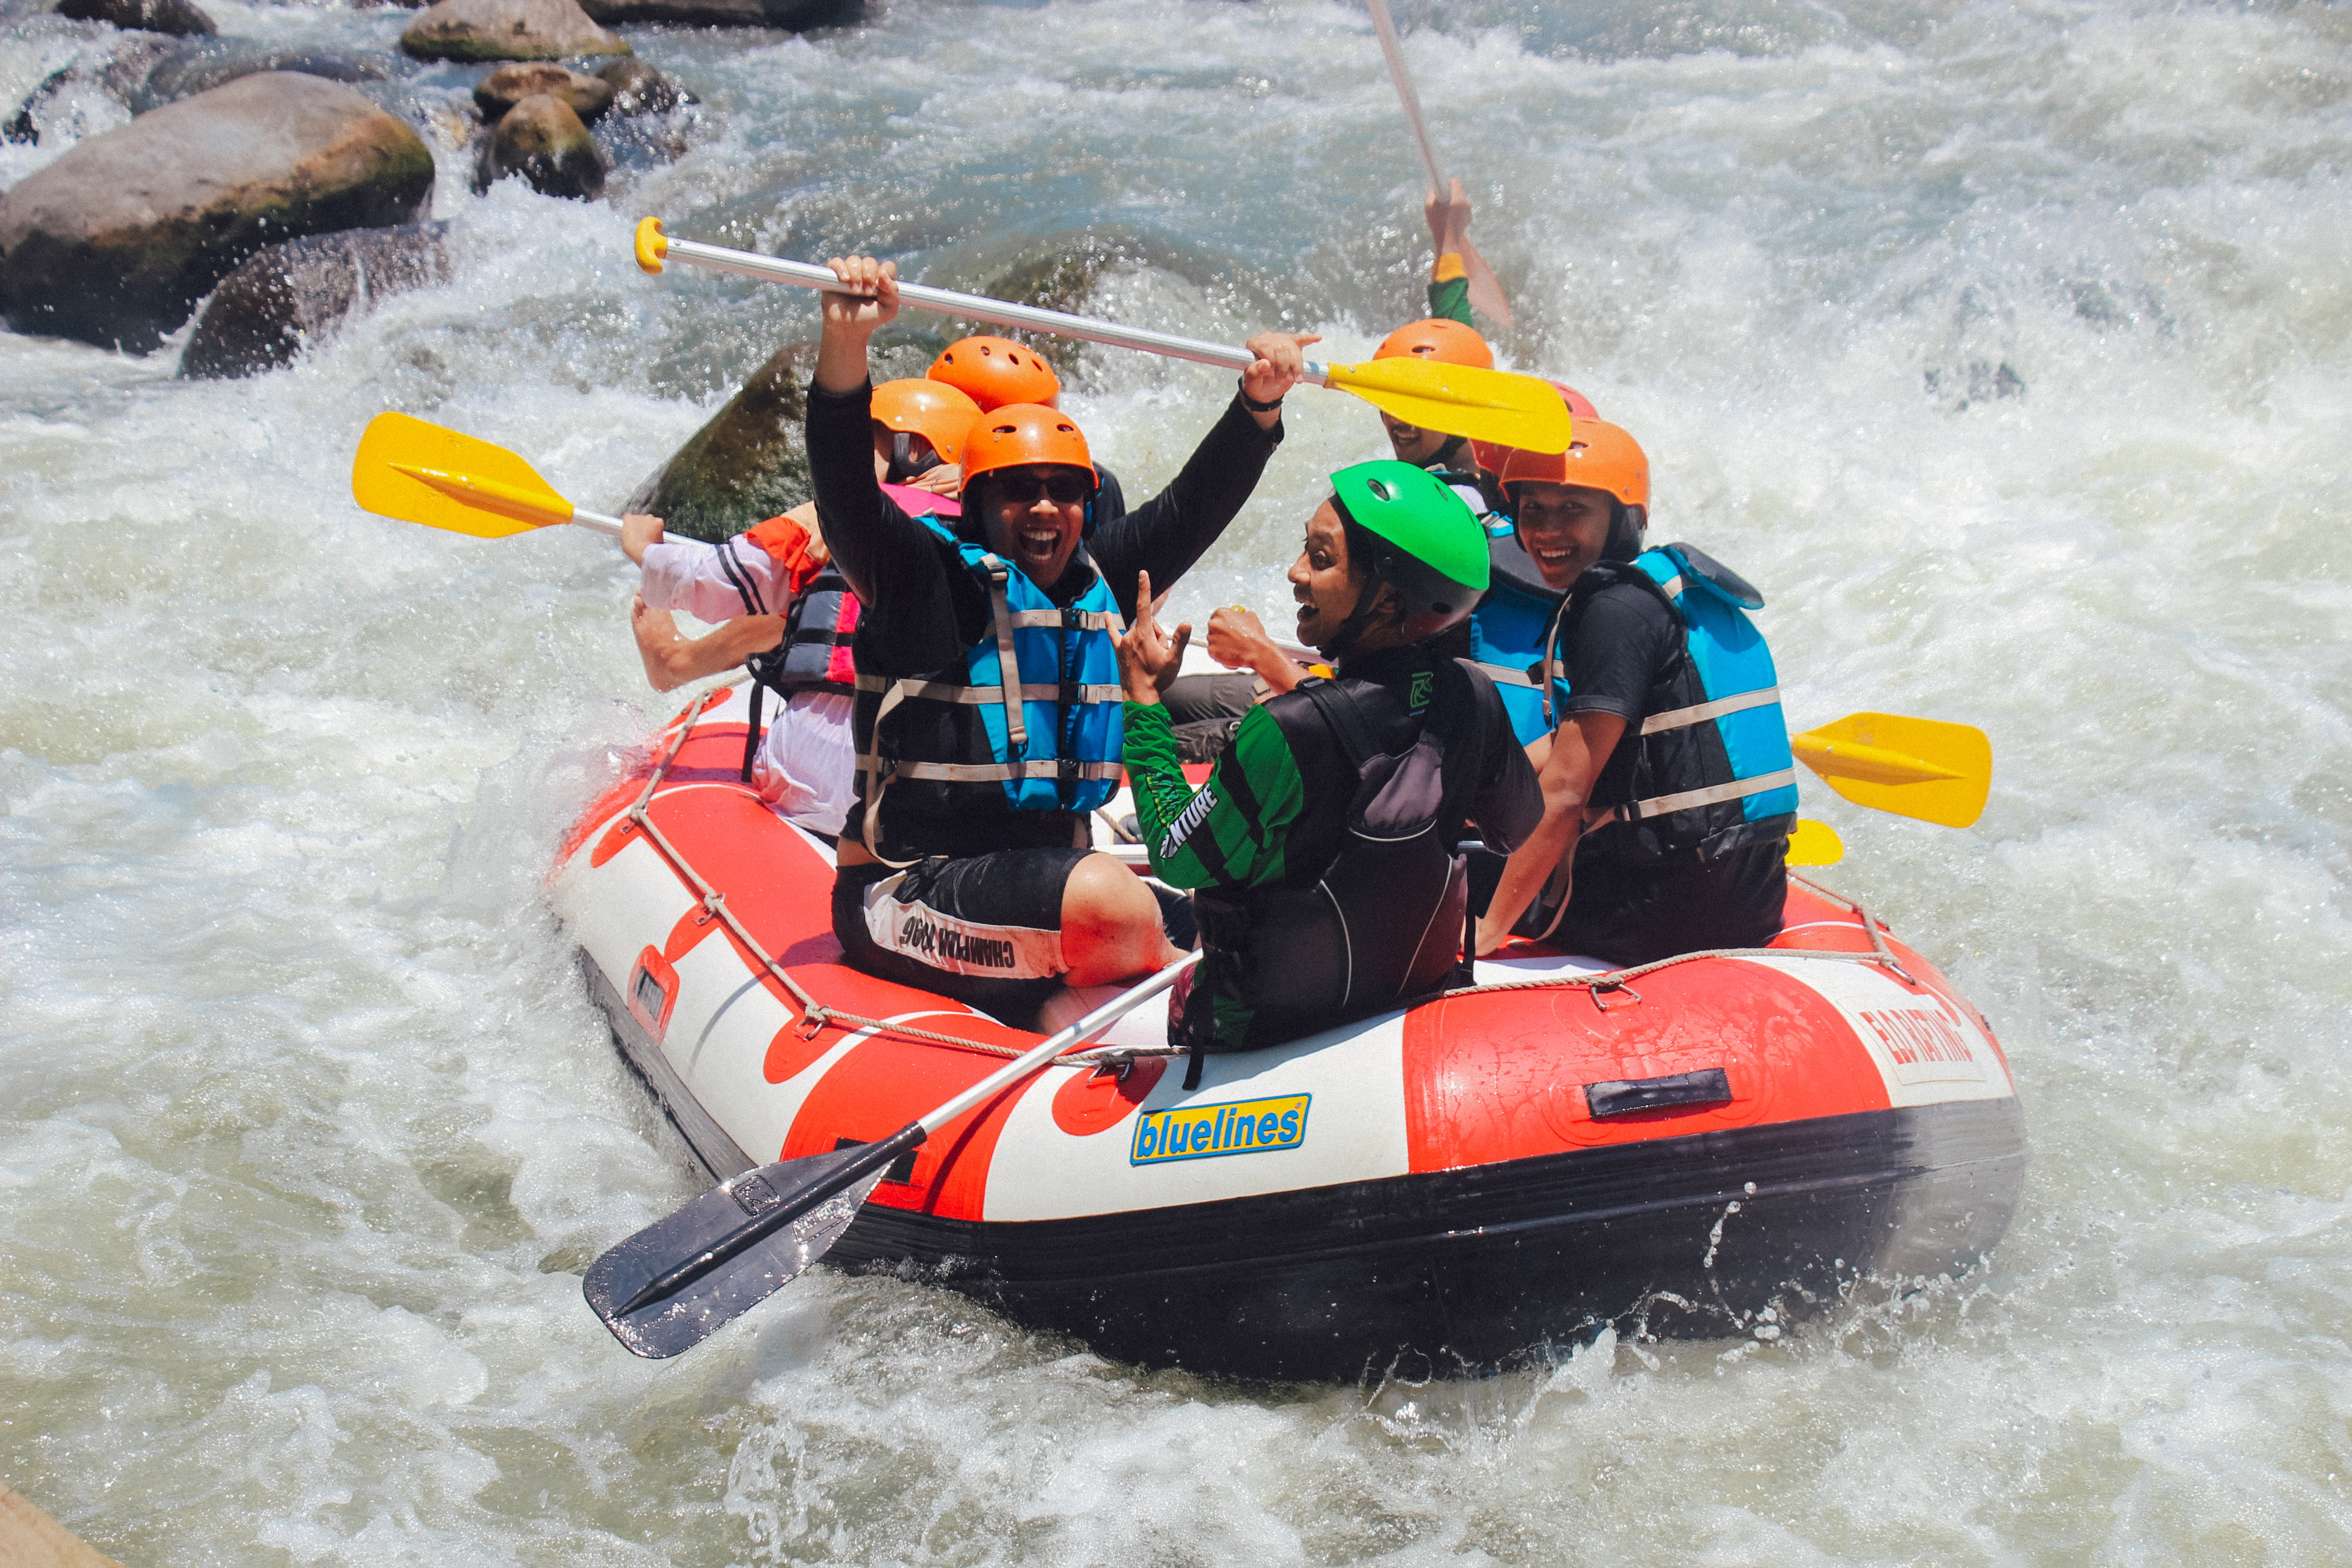 White water rafting in India, Adventure sports in India